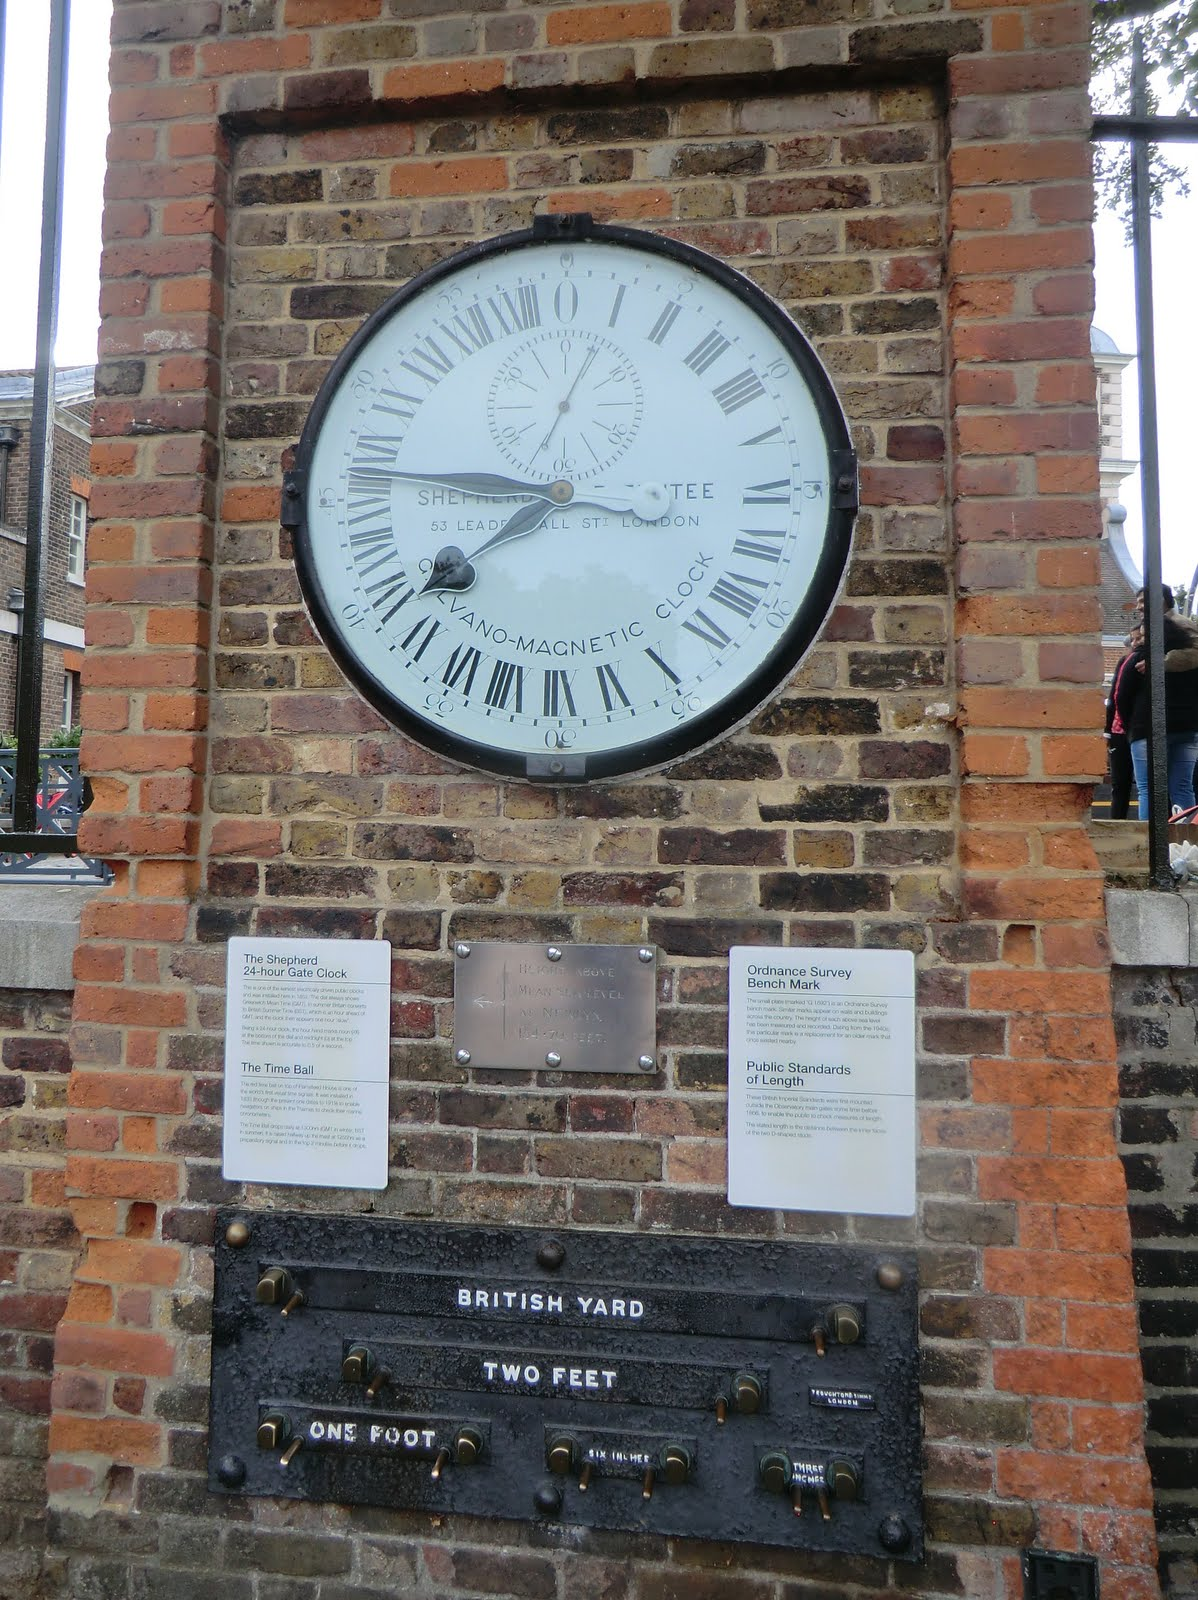 CIMG5074 Shepherd Gate Clock and Imperial Measures, Old Royal Observatory